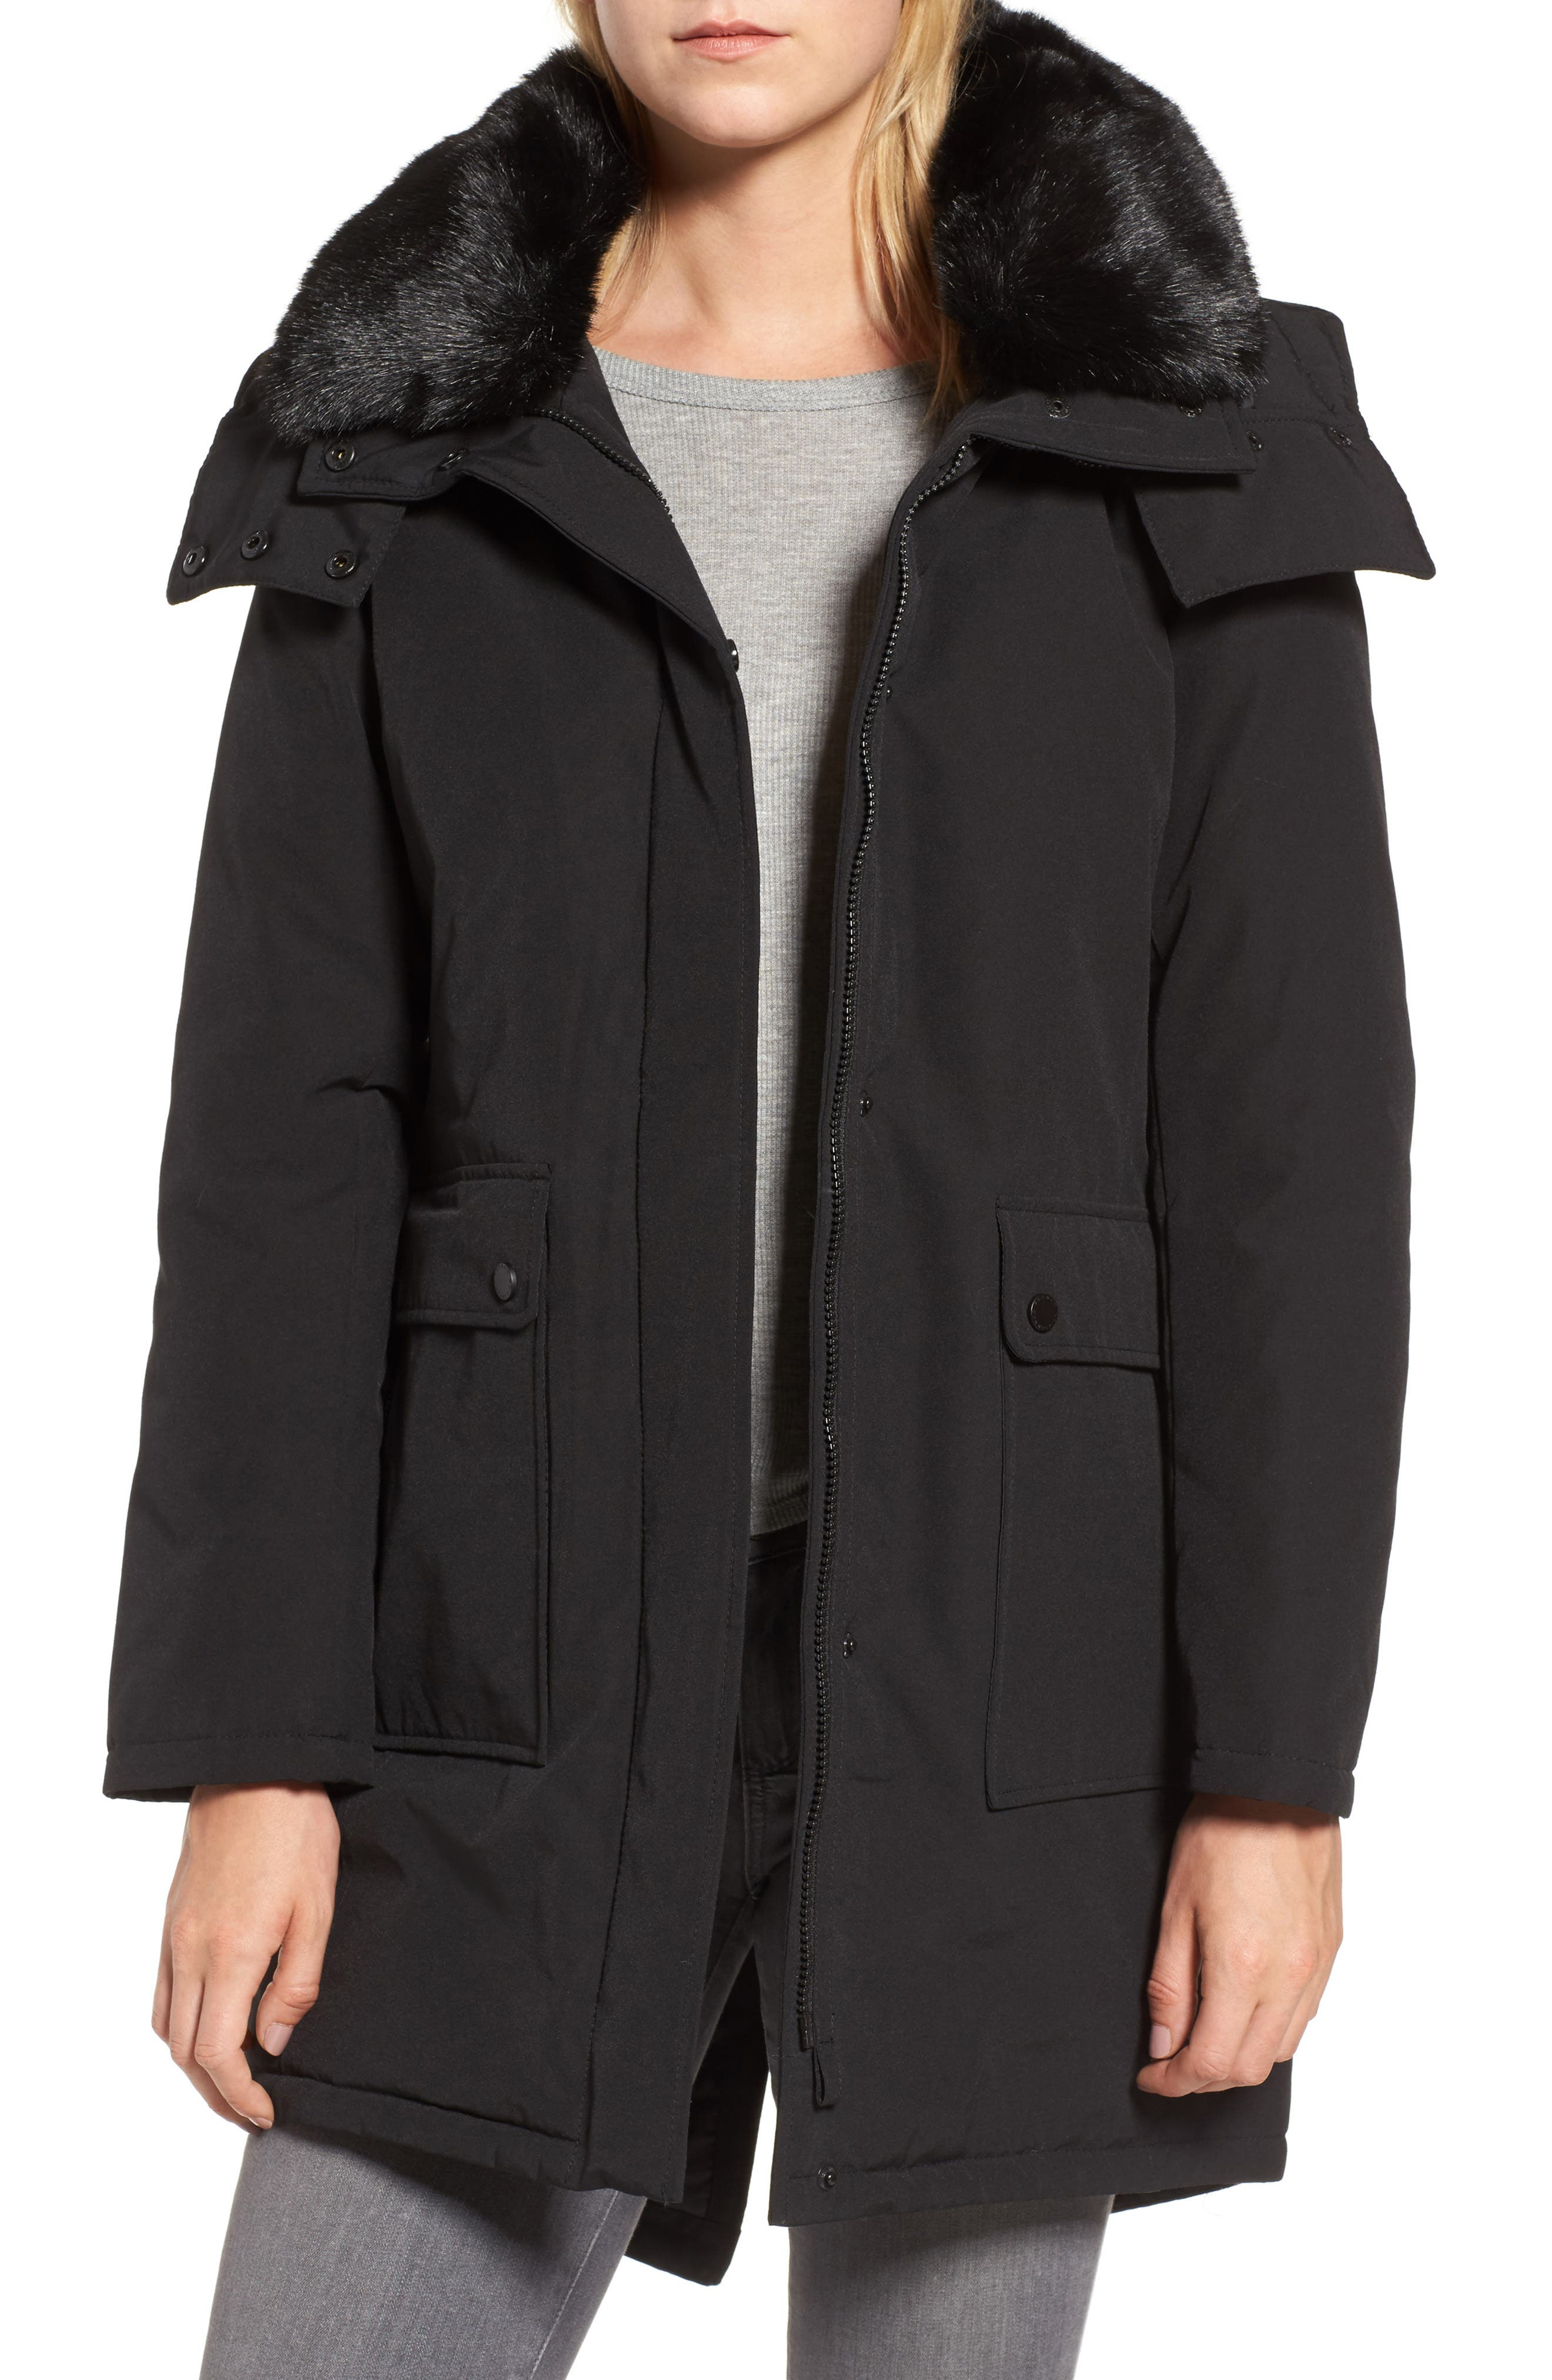 Main Image - French Connection Hooded Anorak with Detachable Faux Fur Collar